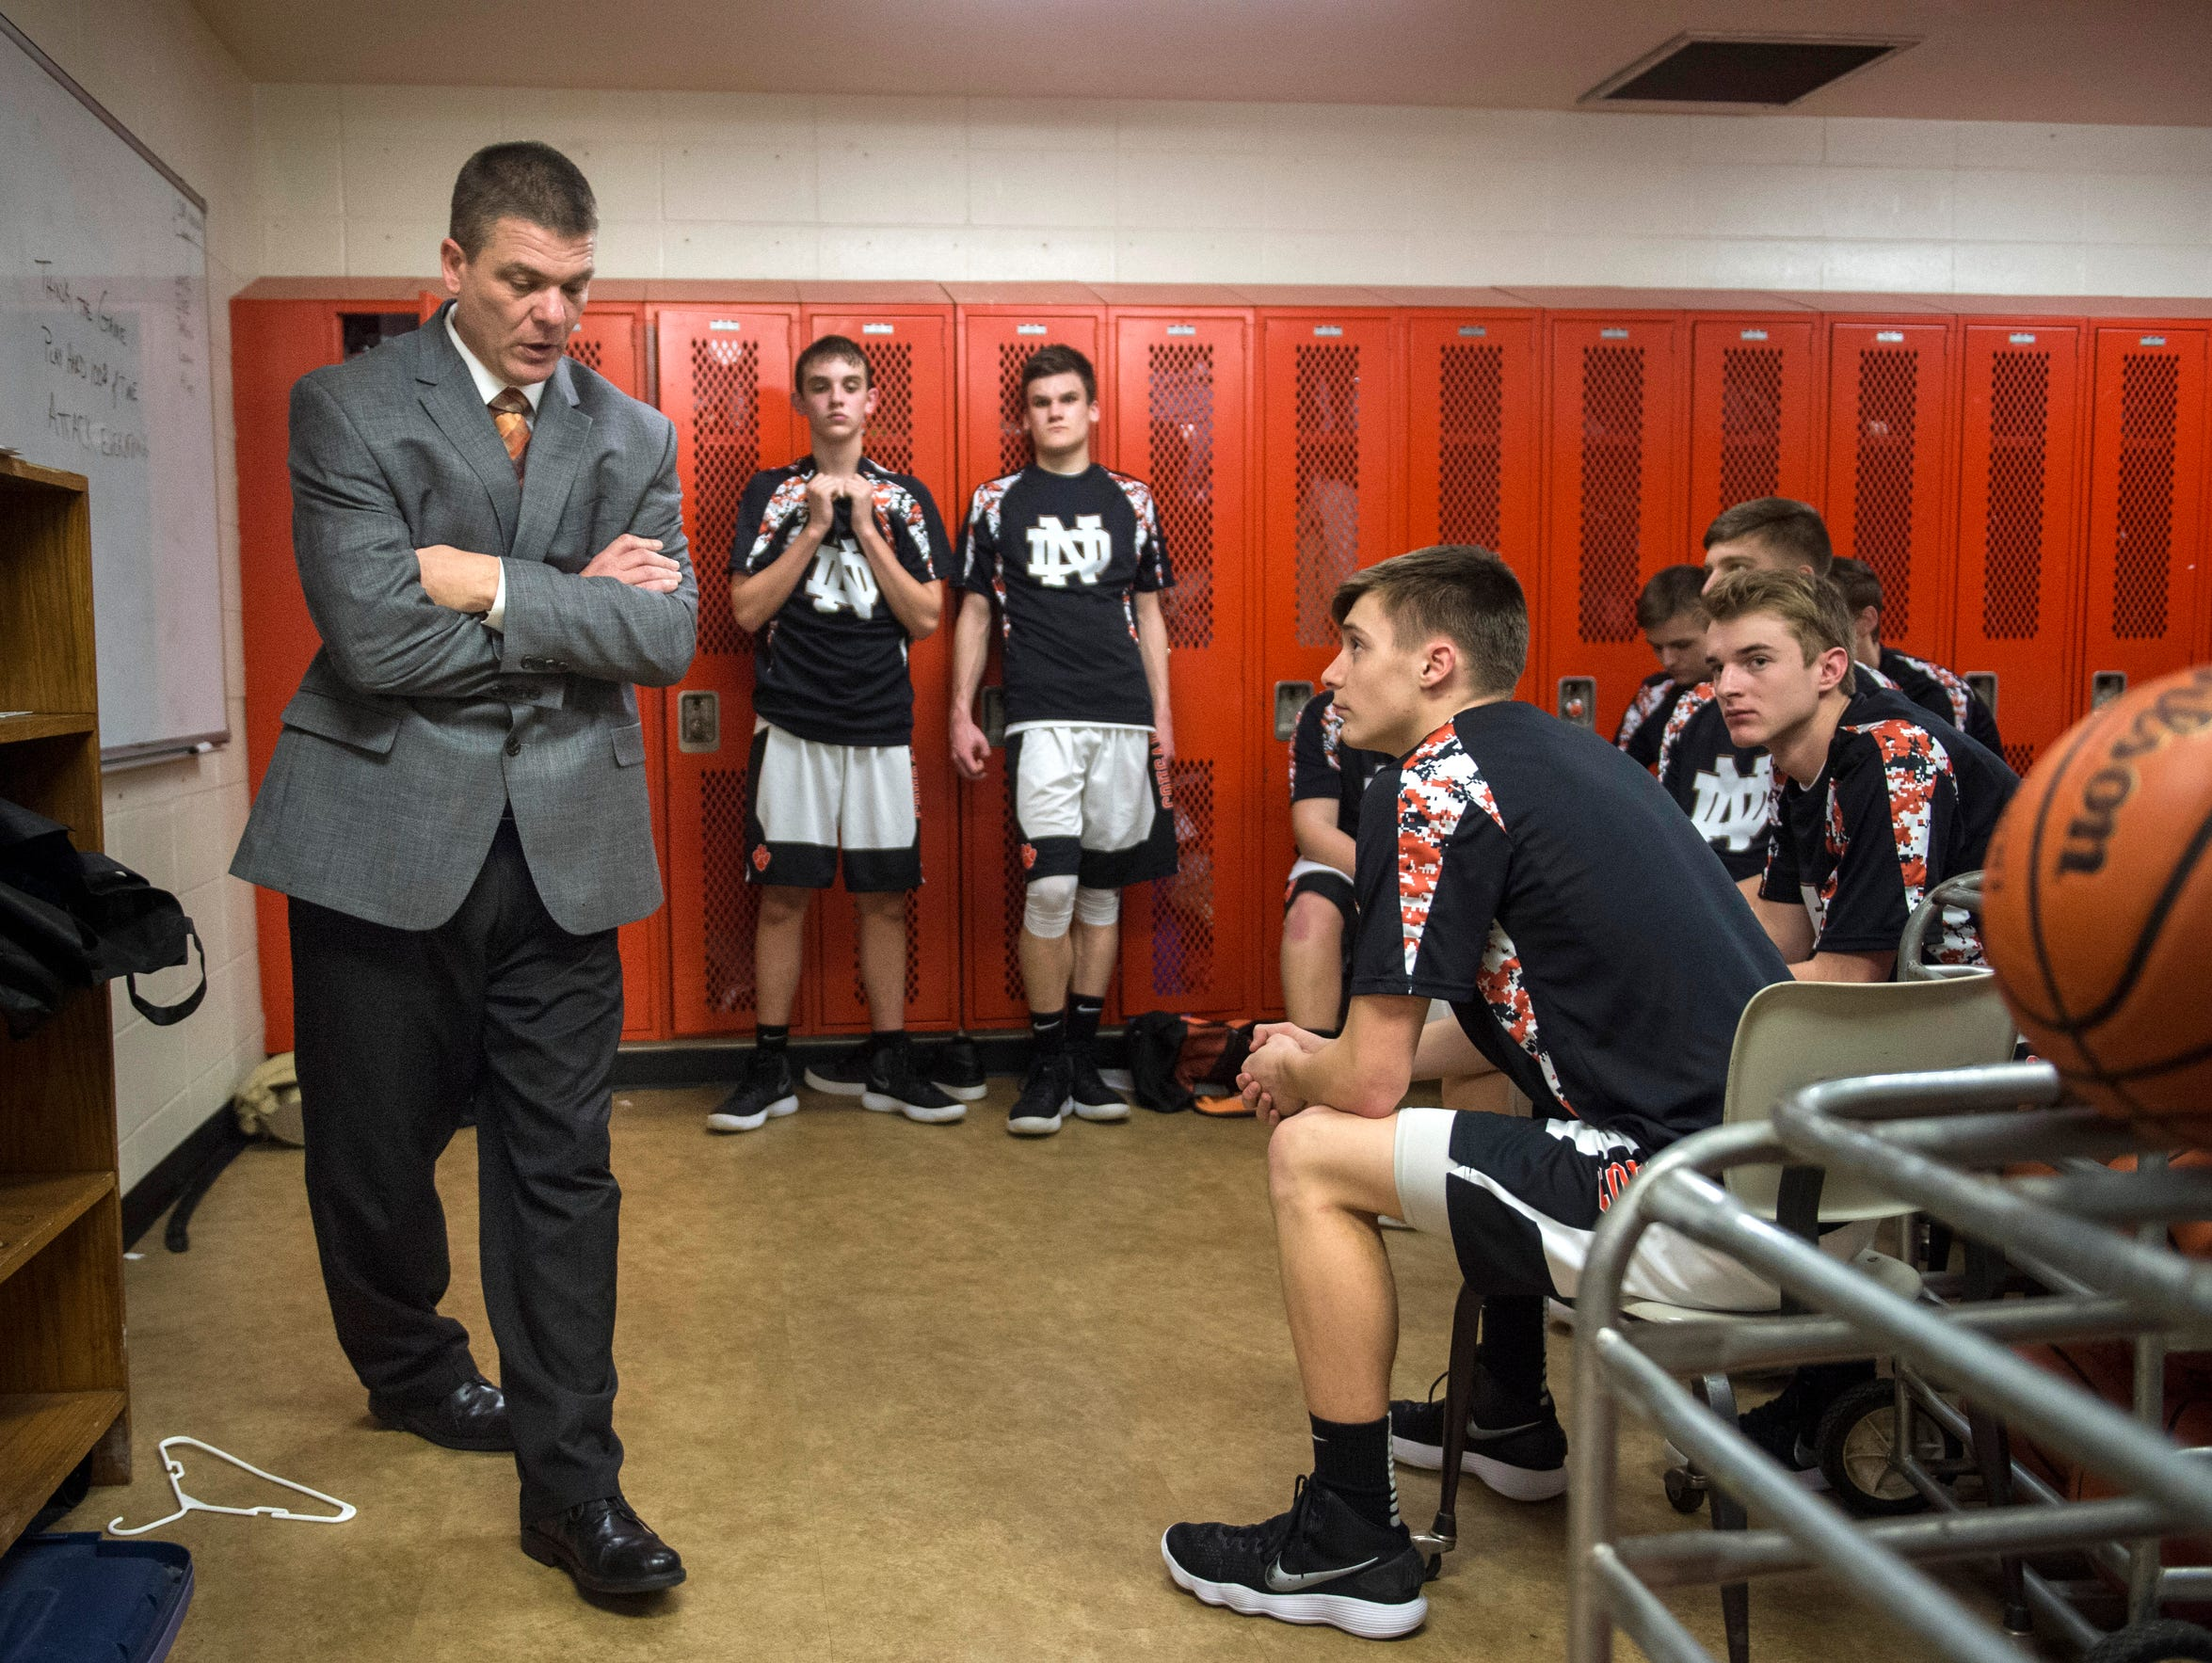 North Daviess head coach Brent Dalrymple talks to his team in the locker room before taking on White River Valley at North Daviess High School on Friday, Feb. 16, 2018.